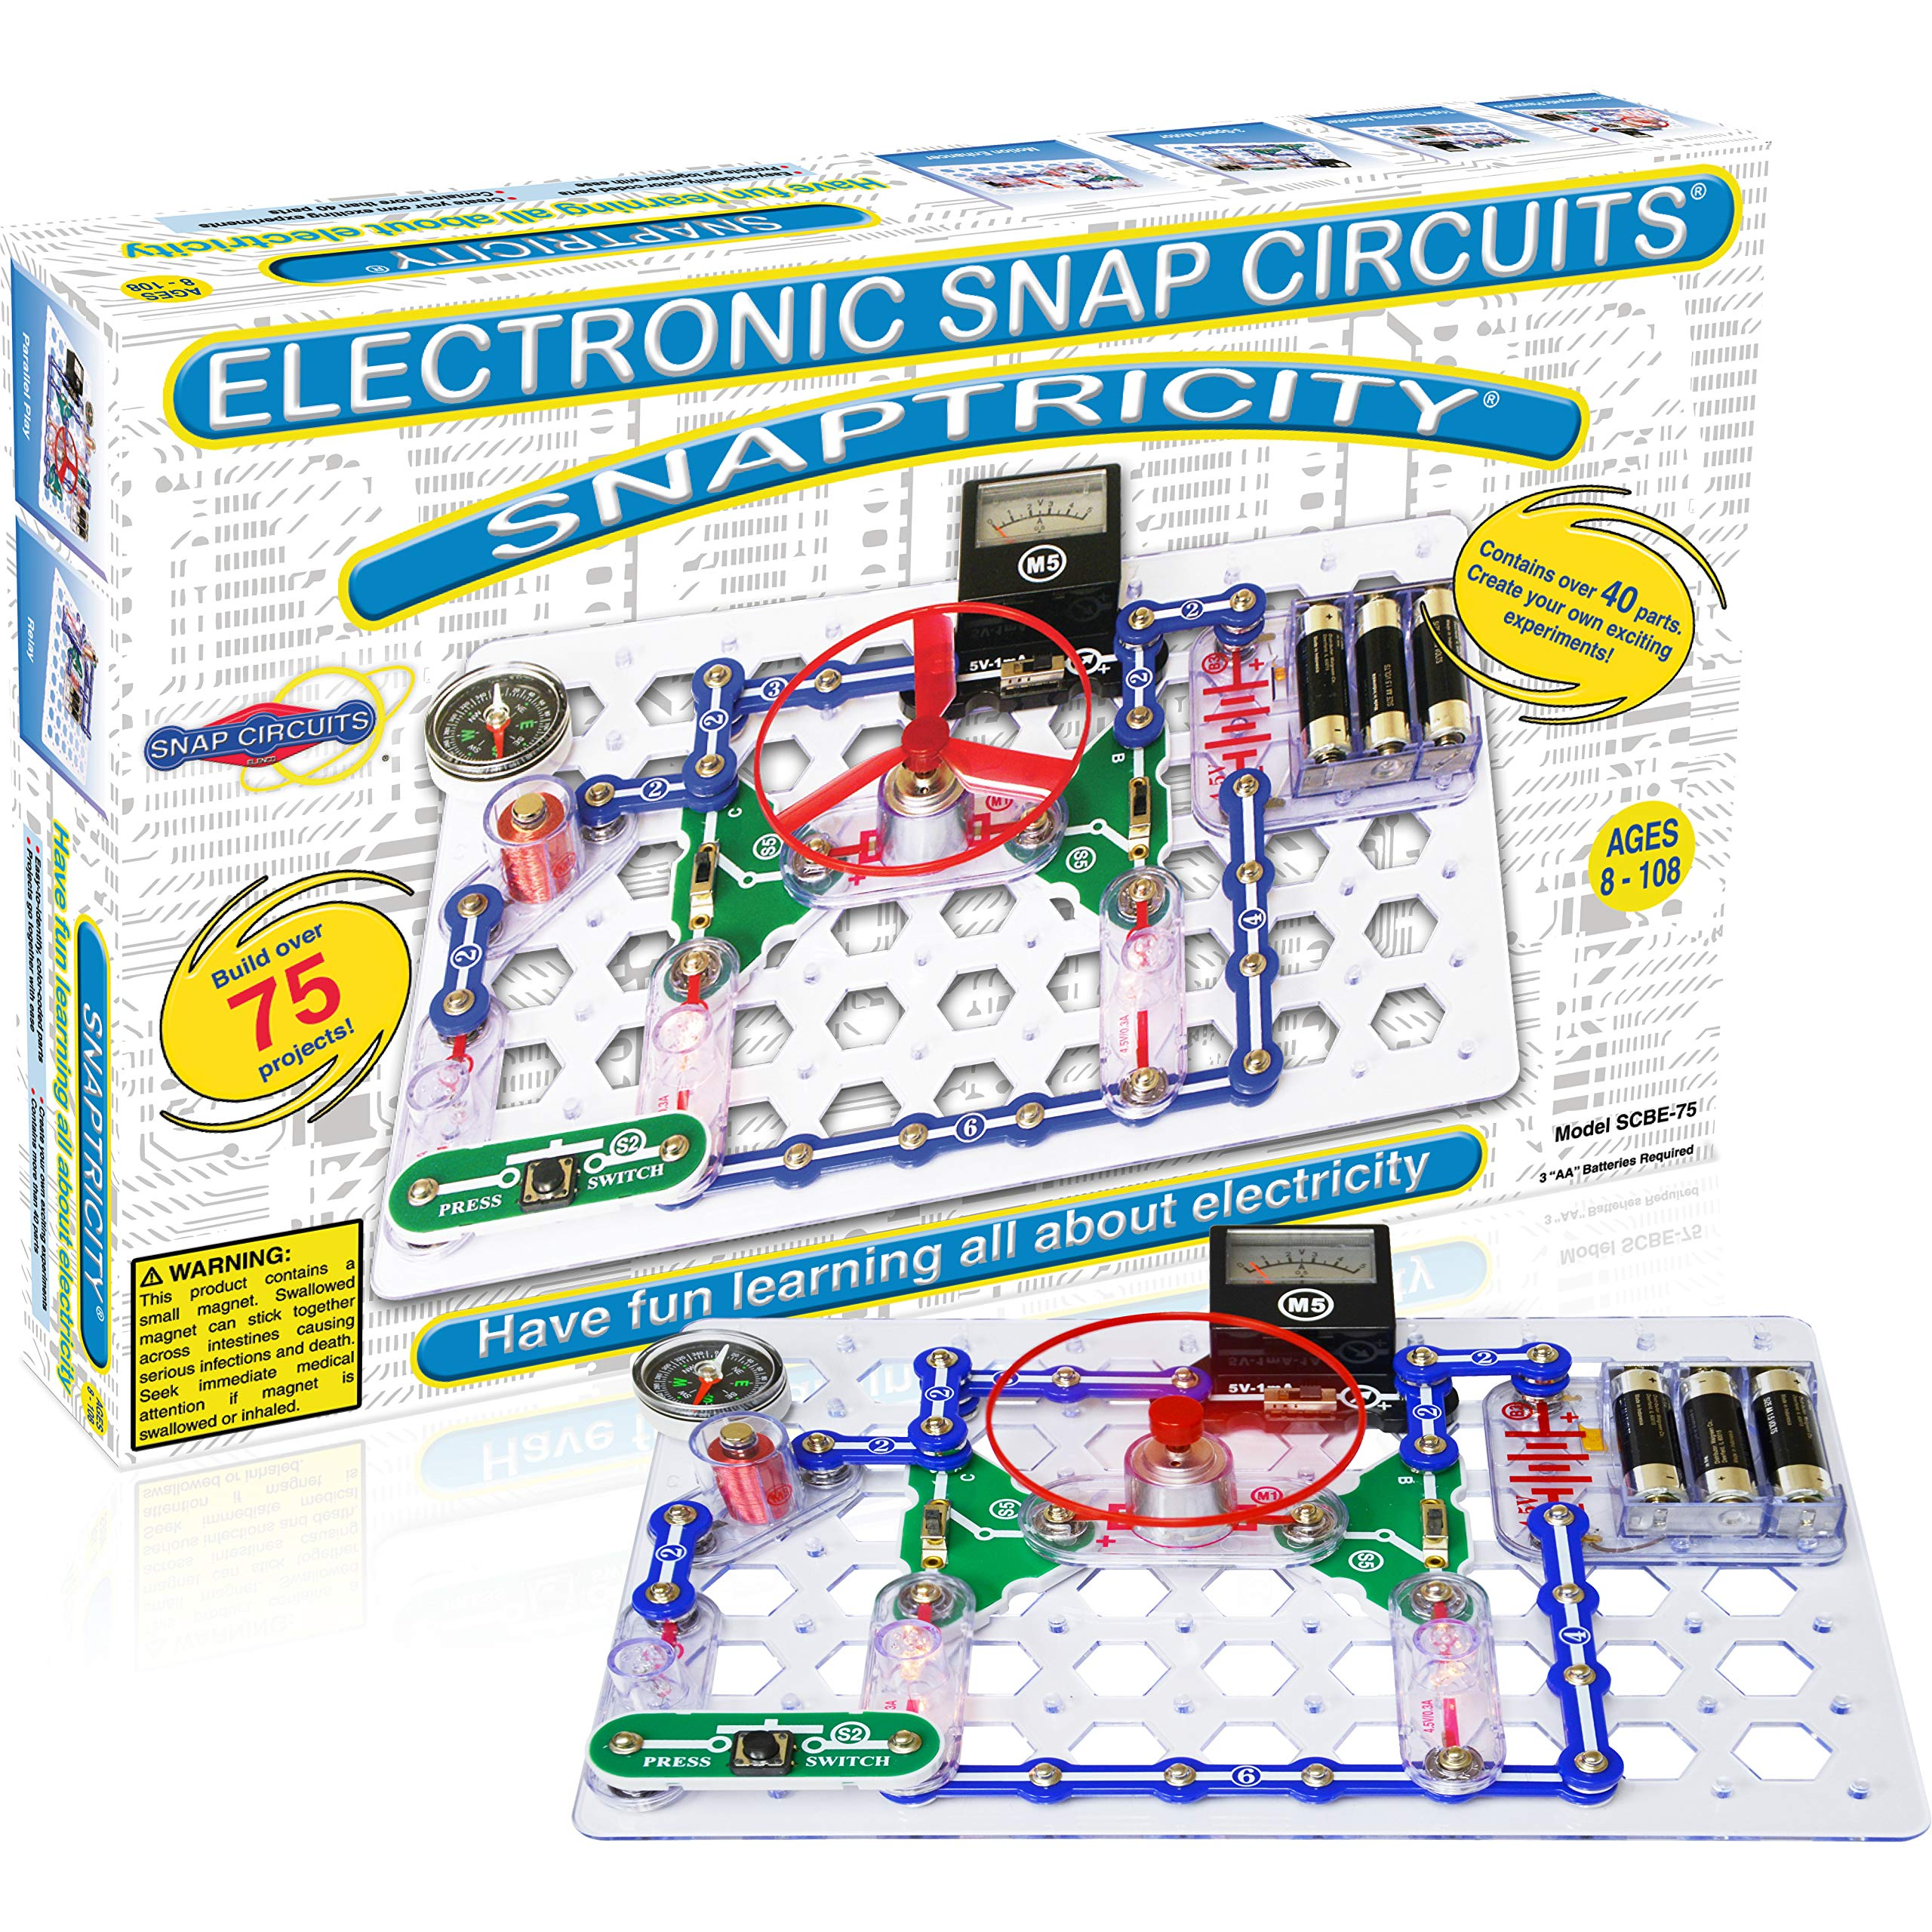 Snap Circuits Snaptricity Electronics Exploration Kit | Over 75 STEM Projects | 4-Color Project Manual | 40 Snap Modules | Unlimited Fun by Snap Circuits